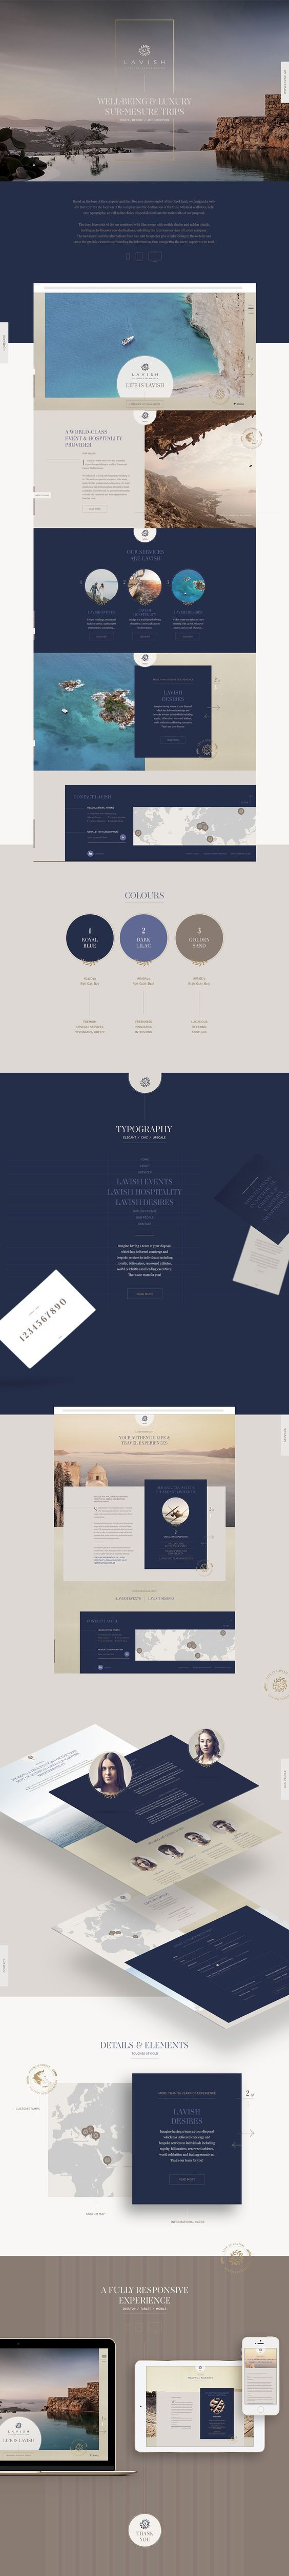 Lavish Travel Experience Web Design by Kommigraphics Design Studio | Fivestar Branding Agency – Design and Branding Agency & Curated Inspiration Gallery